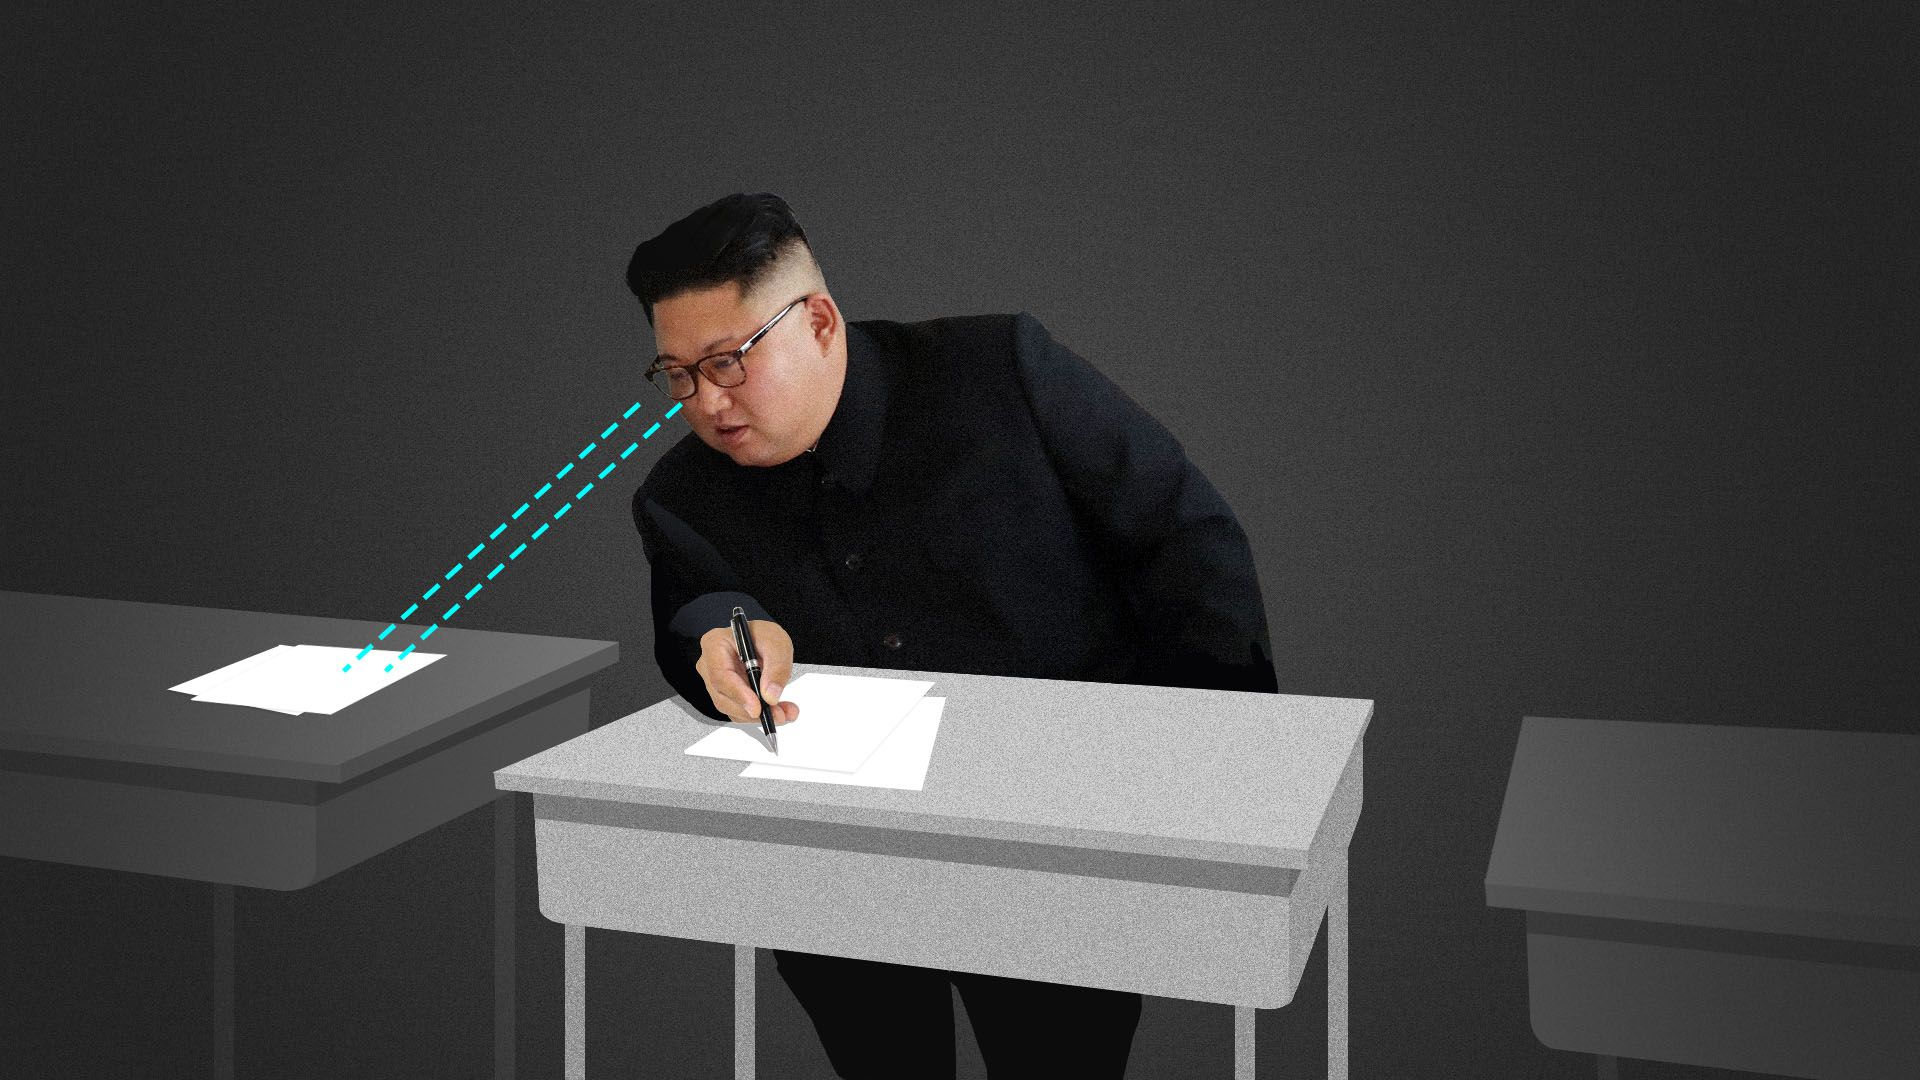 Illustration of North Korean leader Kim Jong-un copying a document